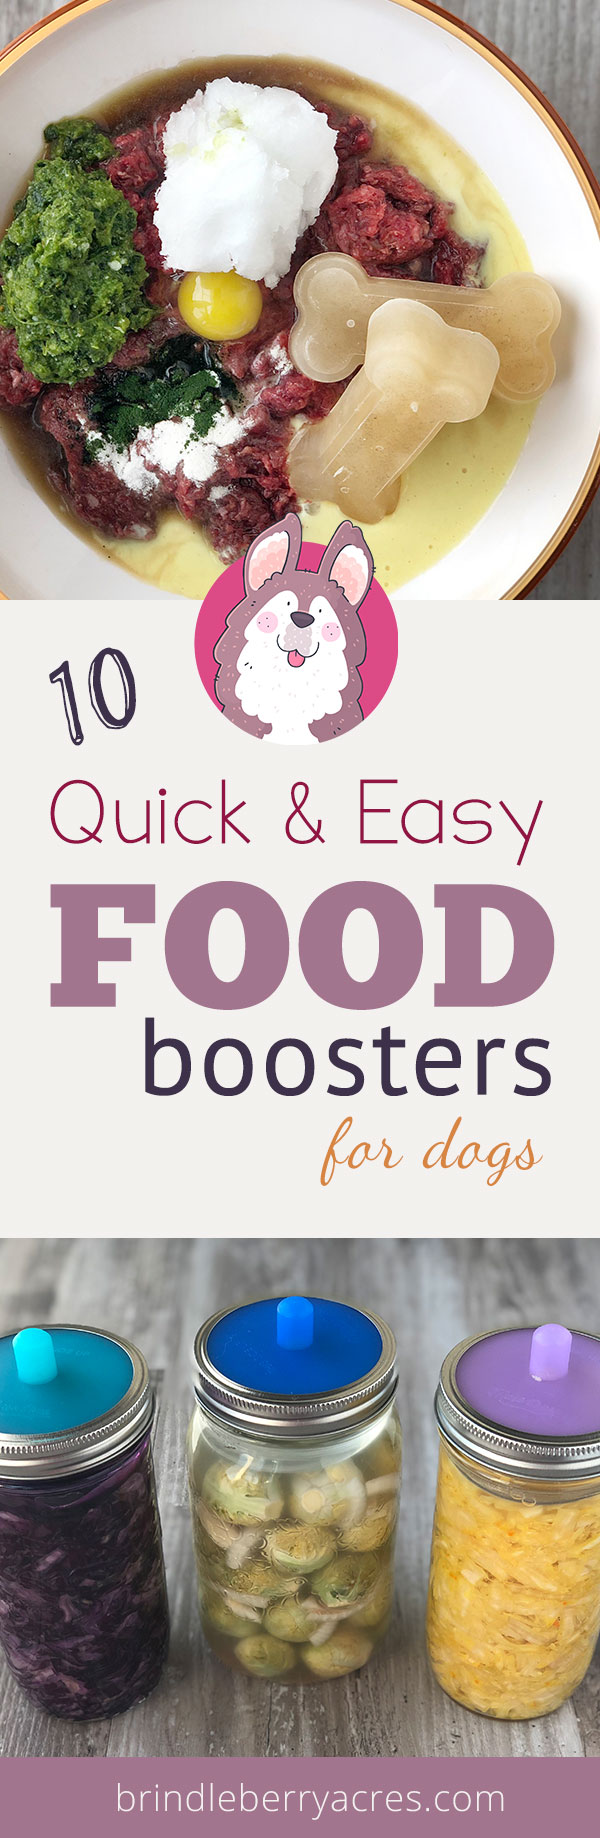 10 quick & easy food boosters you can add to your dog's